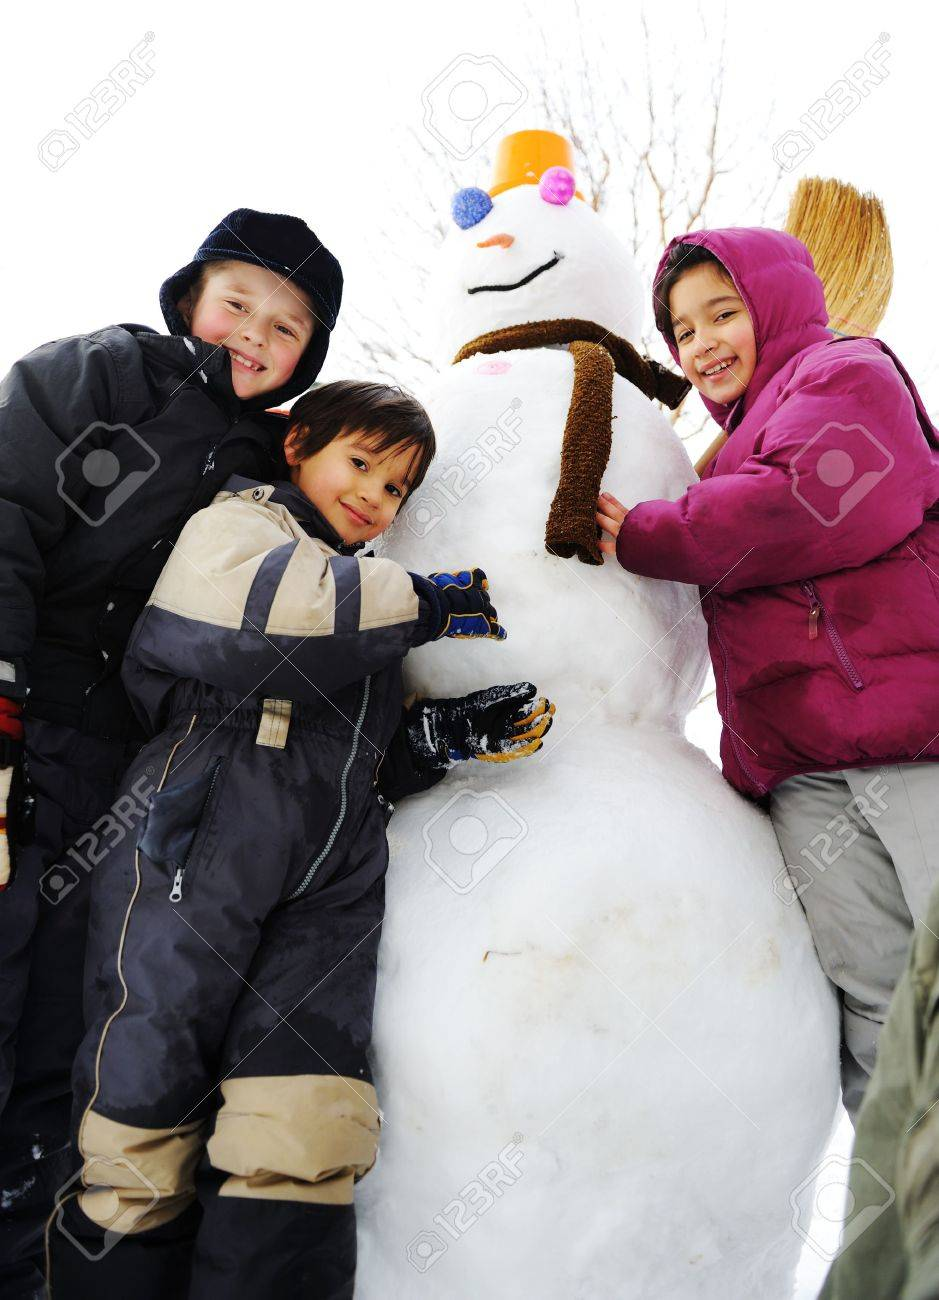 Group of children playing happily in snow making snowman, winter season Stock Photo - 8120322